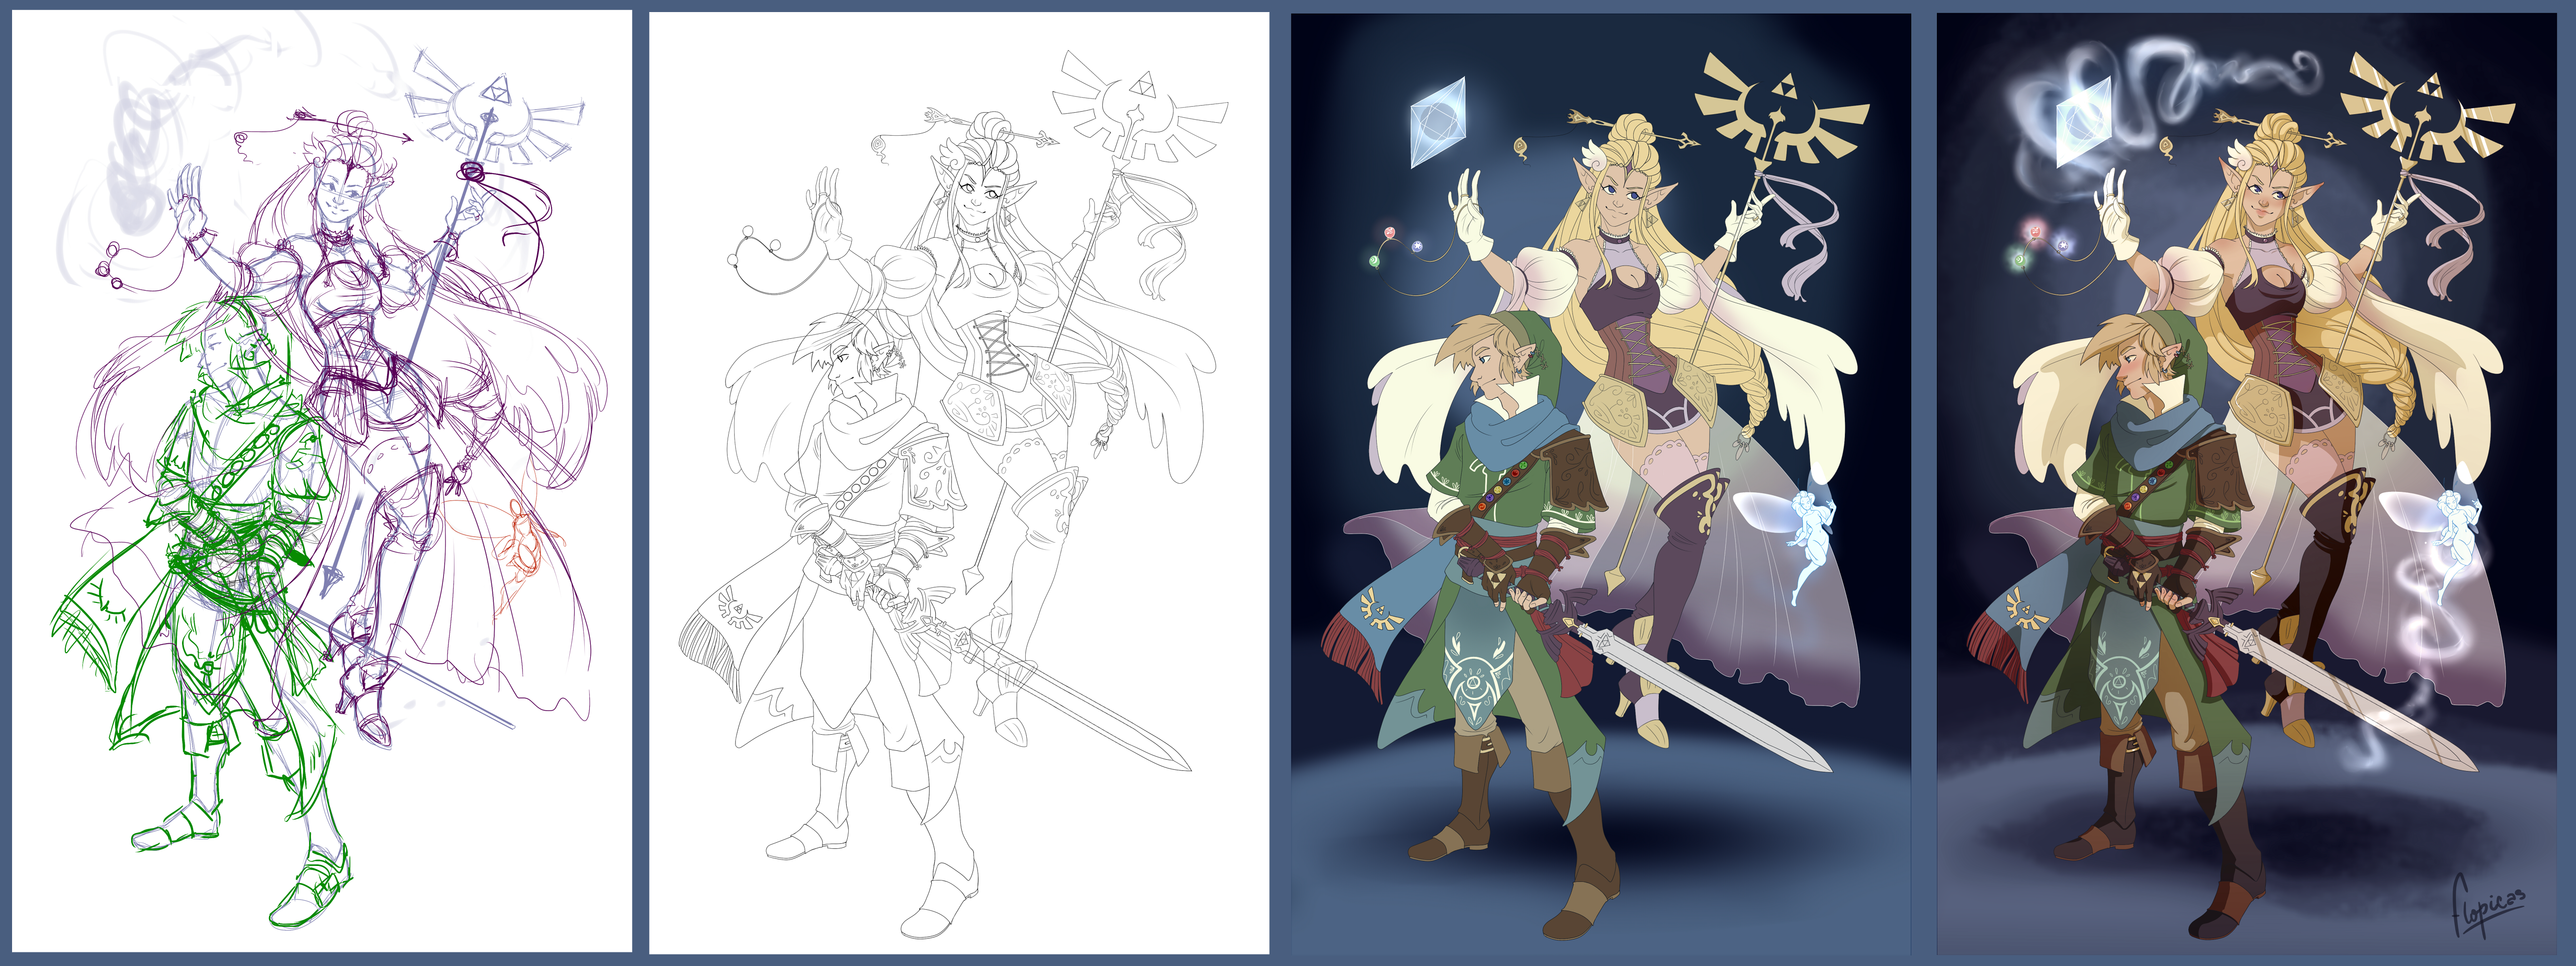 Progress - The goddess and her knight